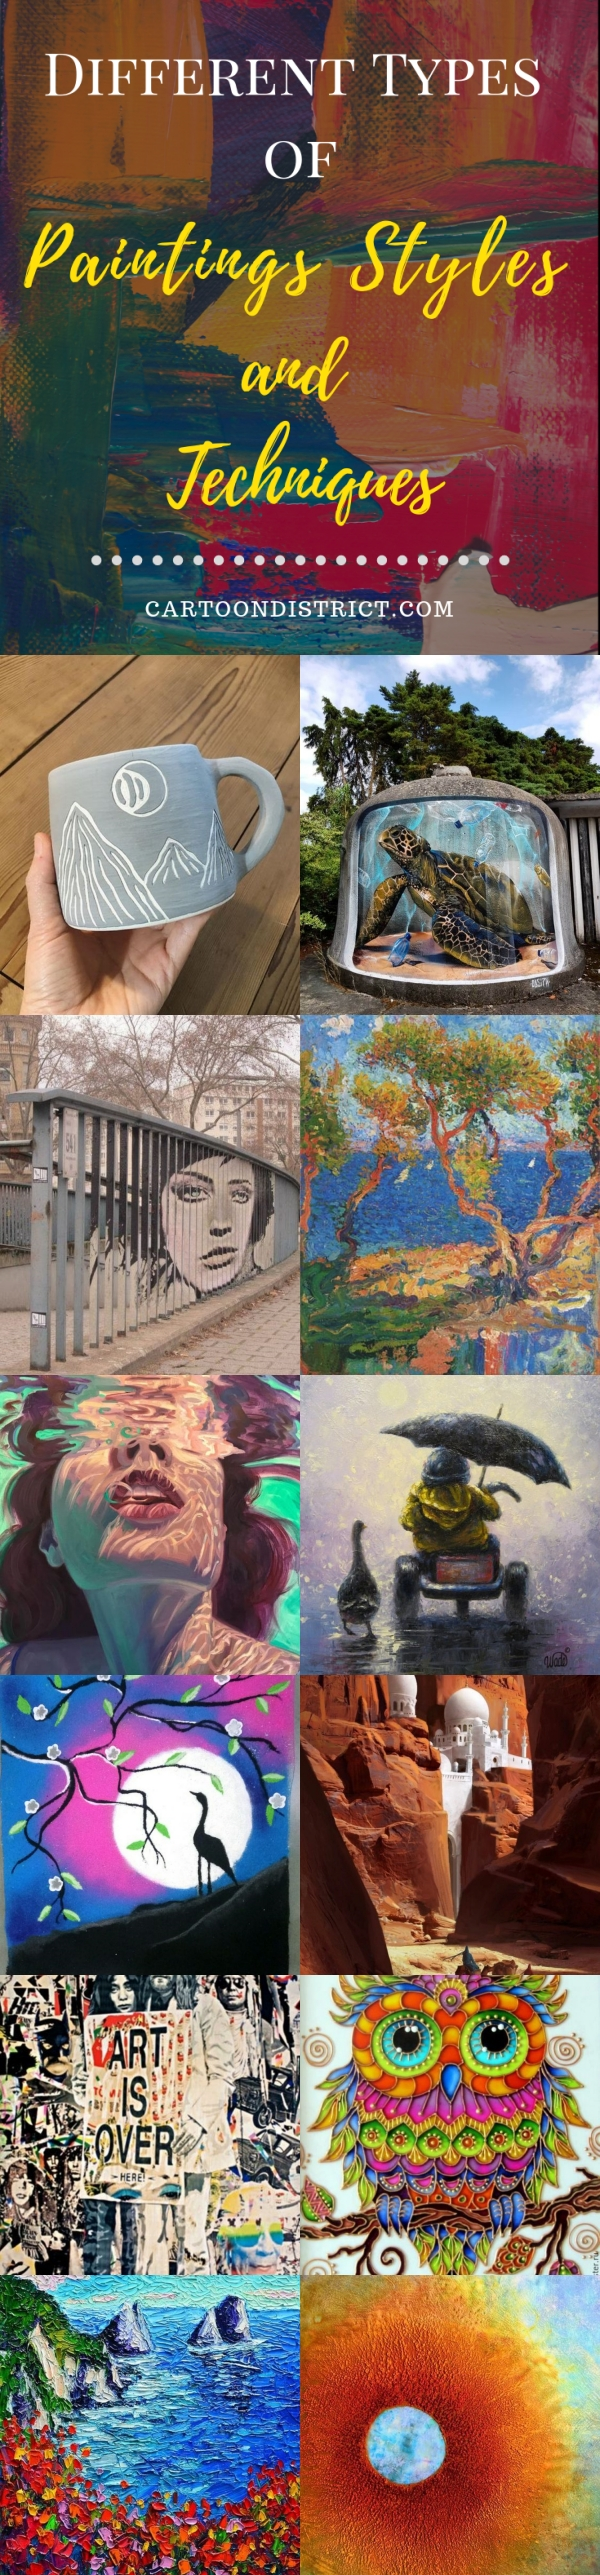 Different Types of Paintings Styles and Techniques